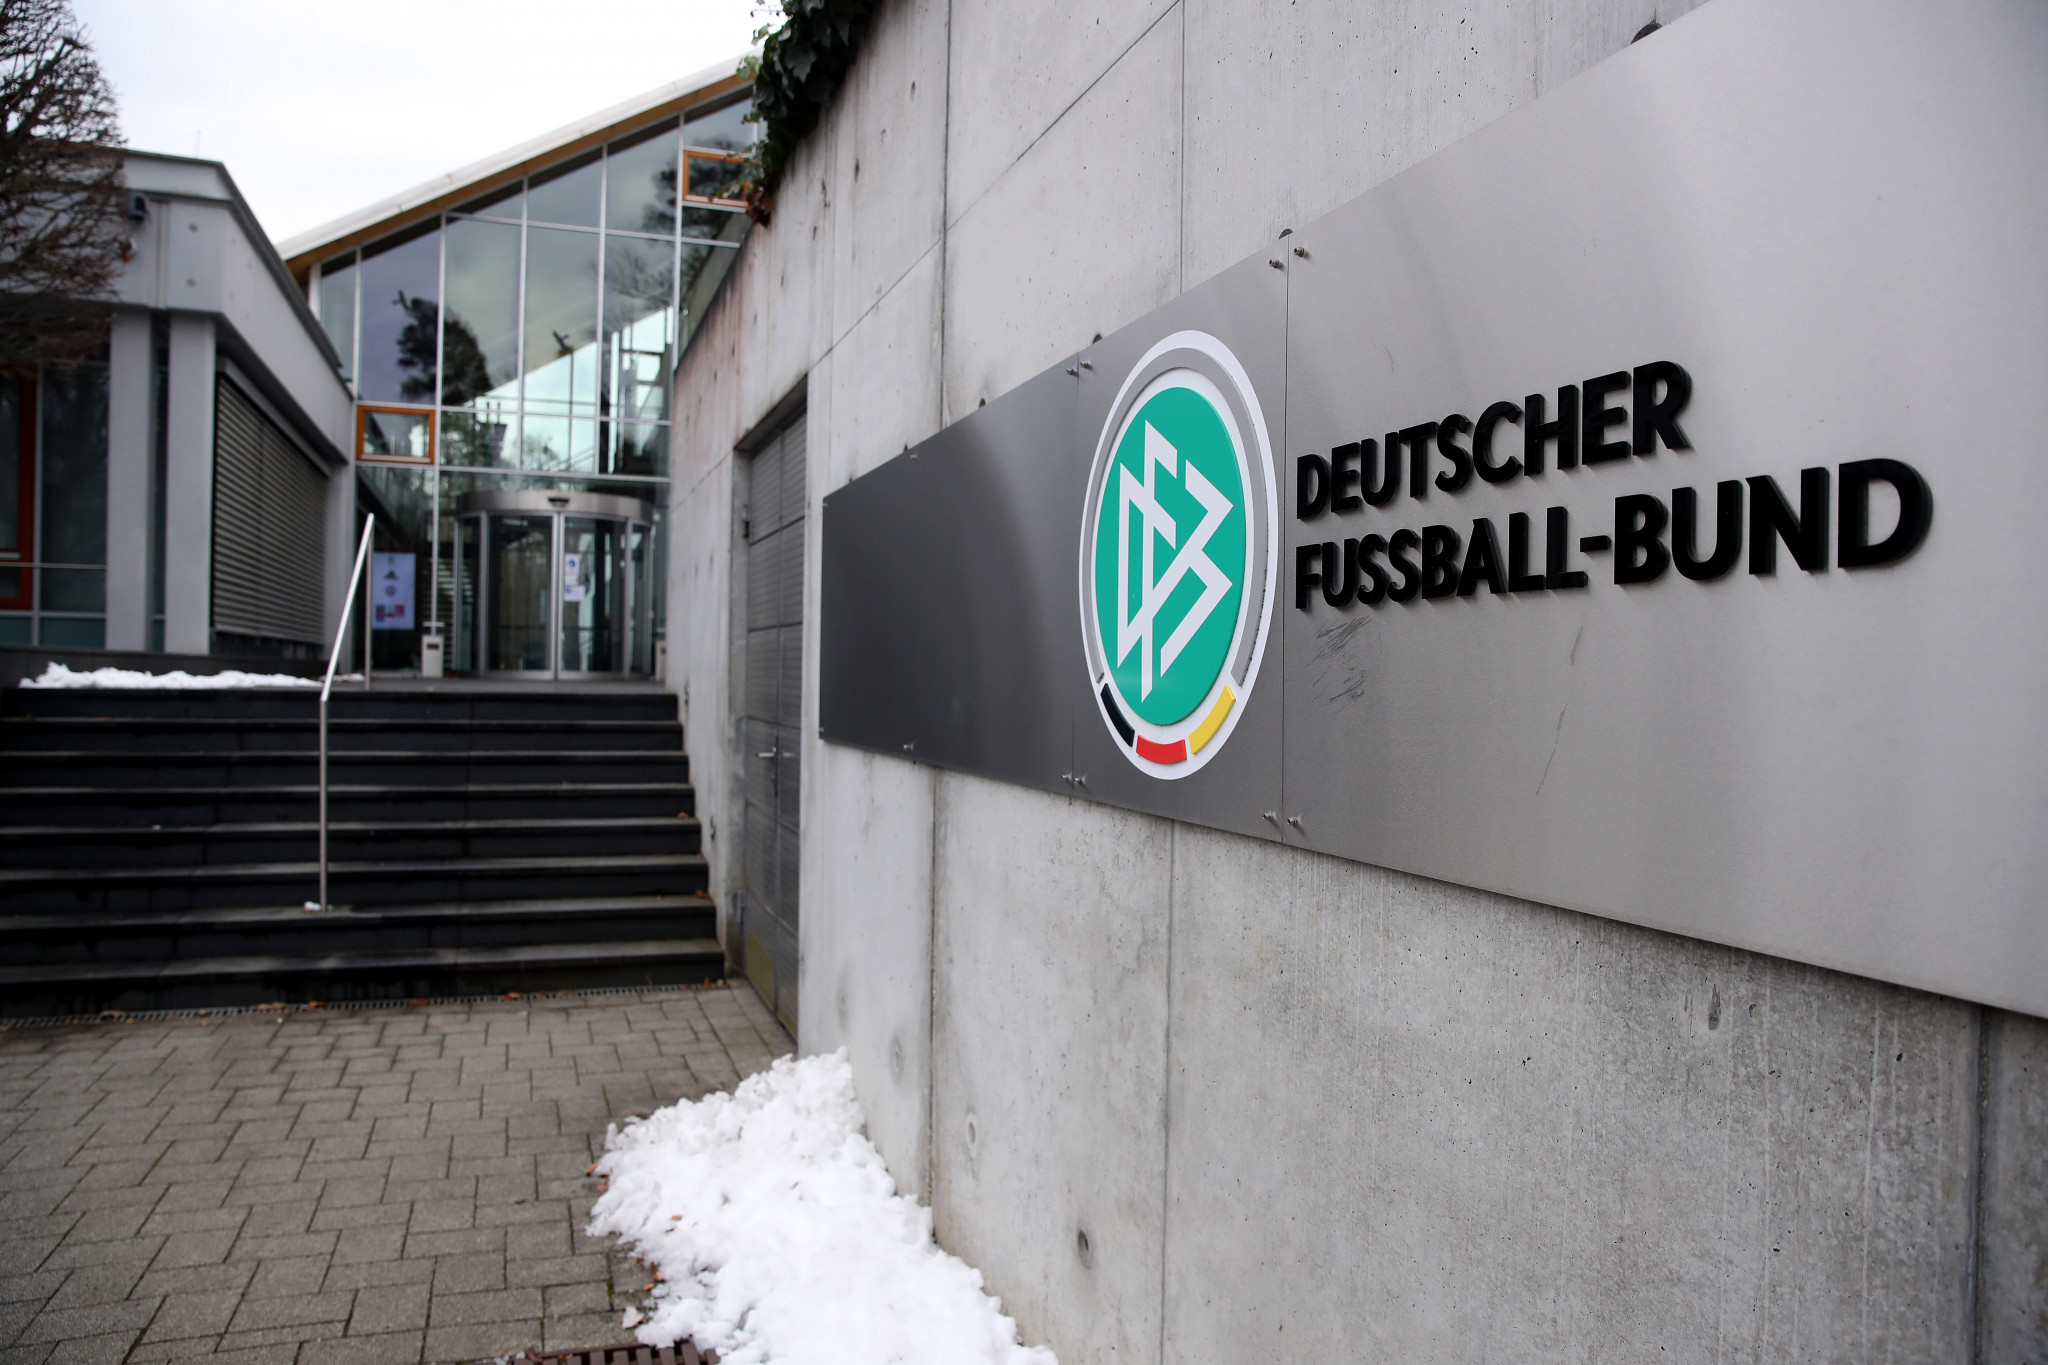 The heads of 26 German regional and state football associations backed a vote of no-confidence in Fritz Keller's leadership ©Getty Images